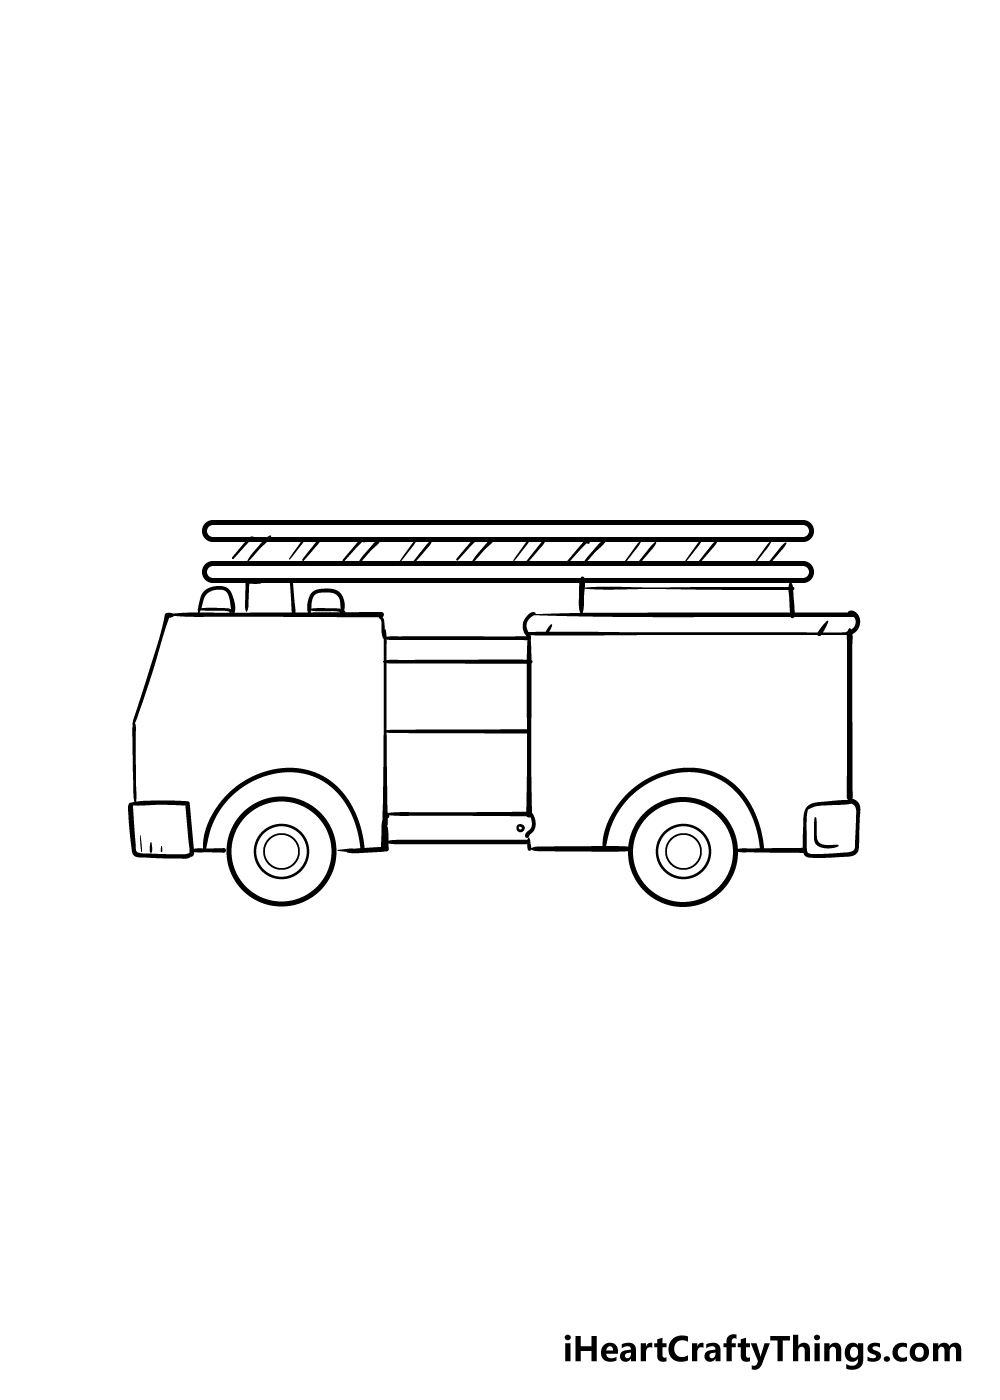 fire truck drawing step 4